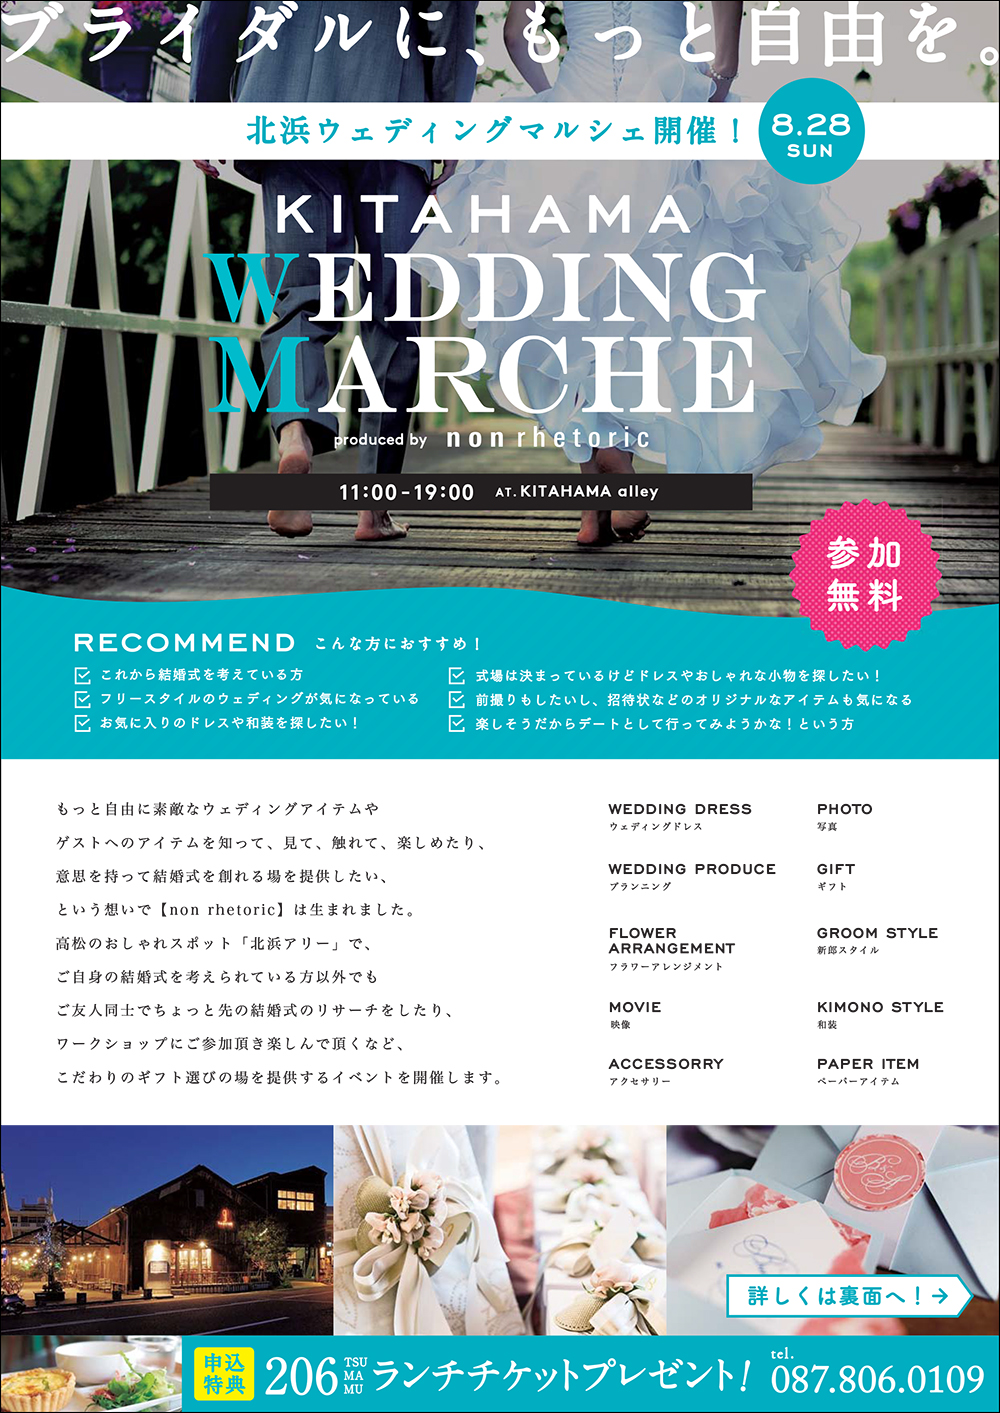 KITAHAMA WEDDING MARCHE